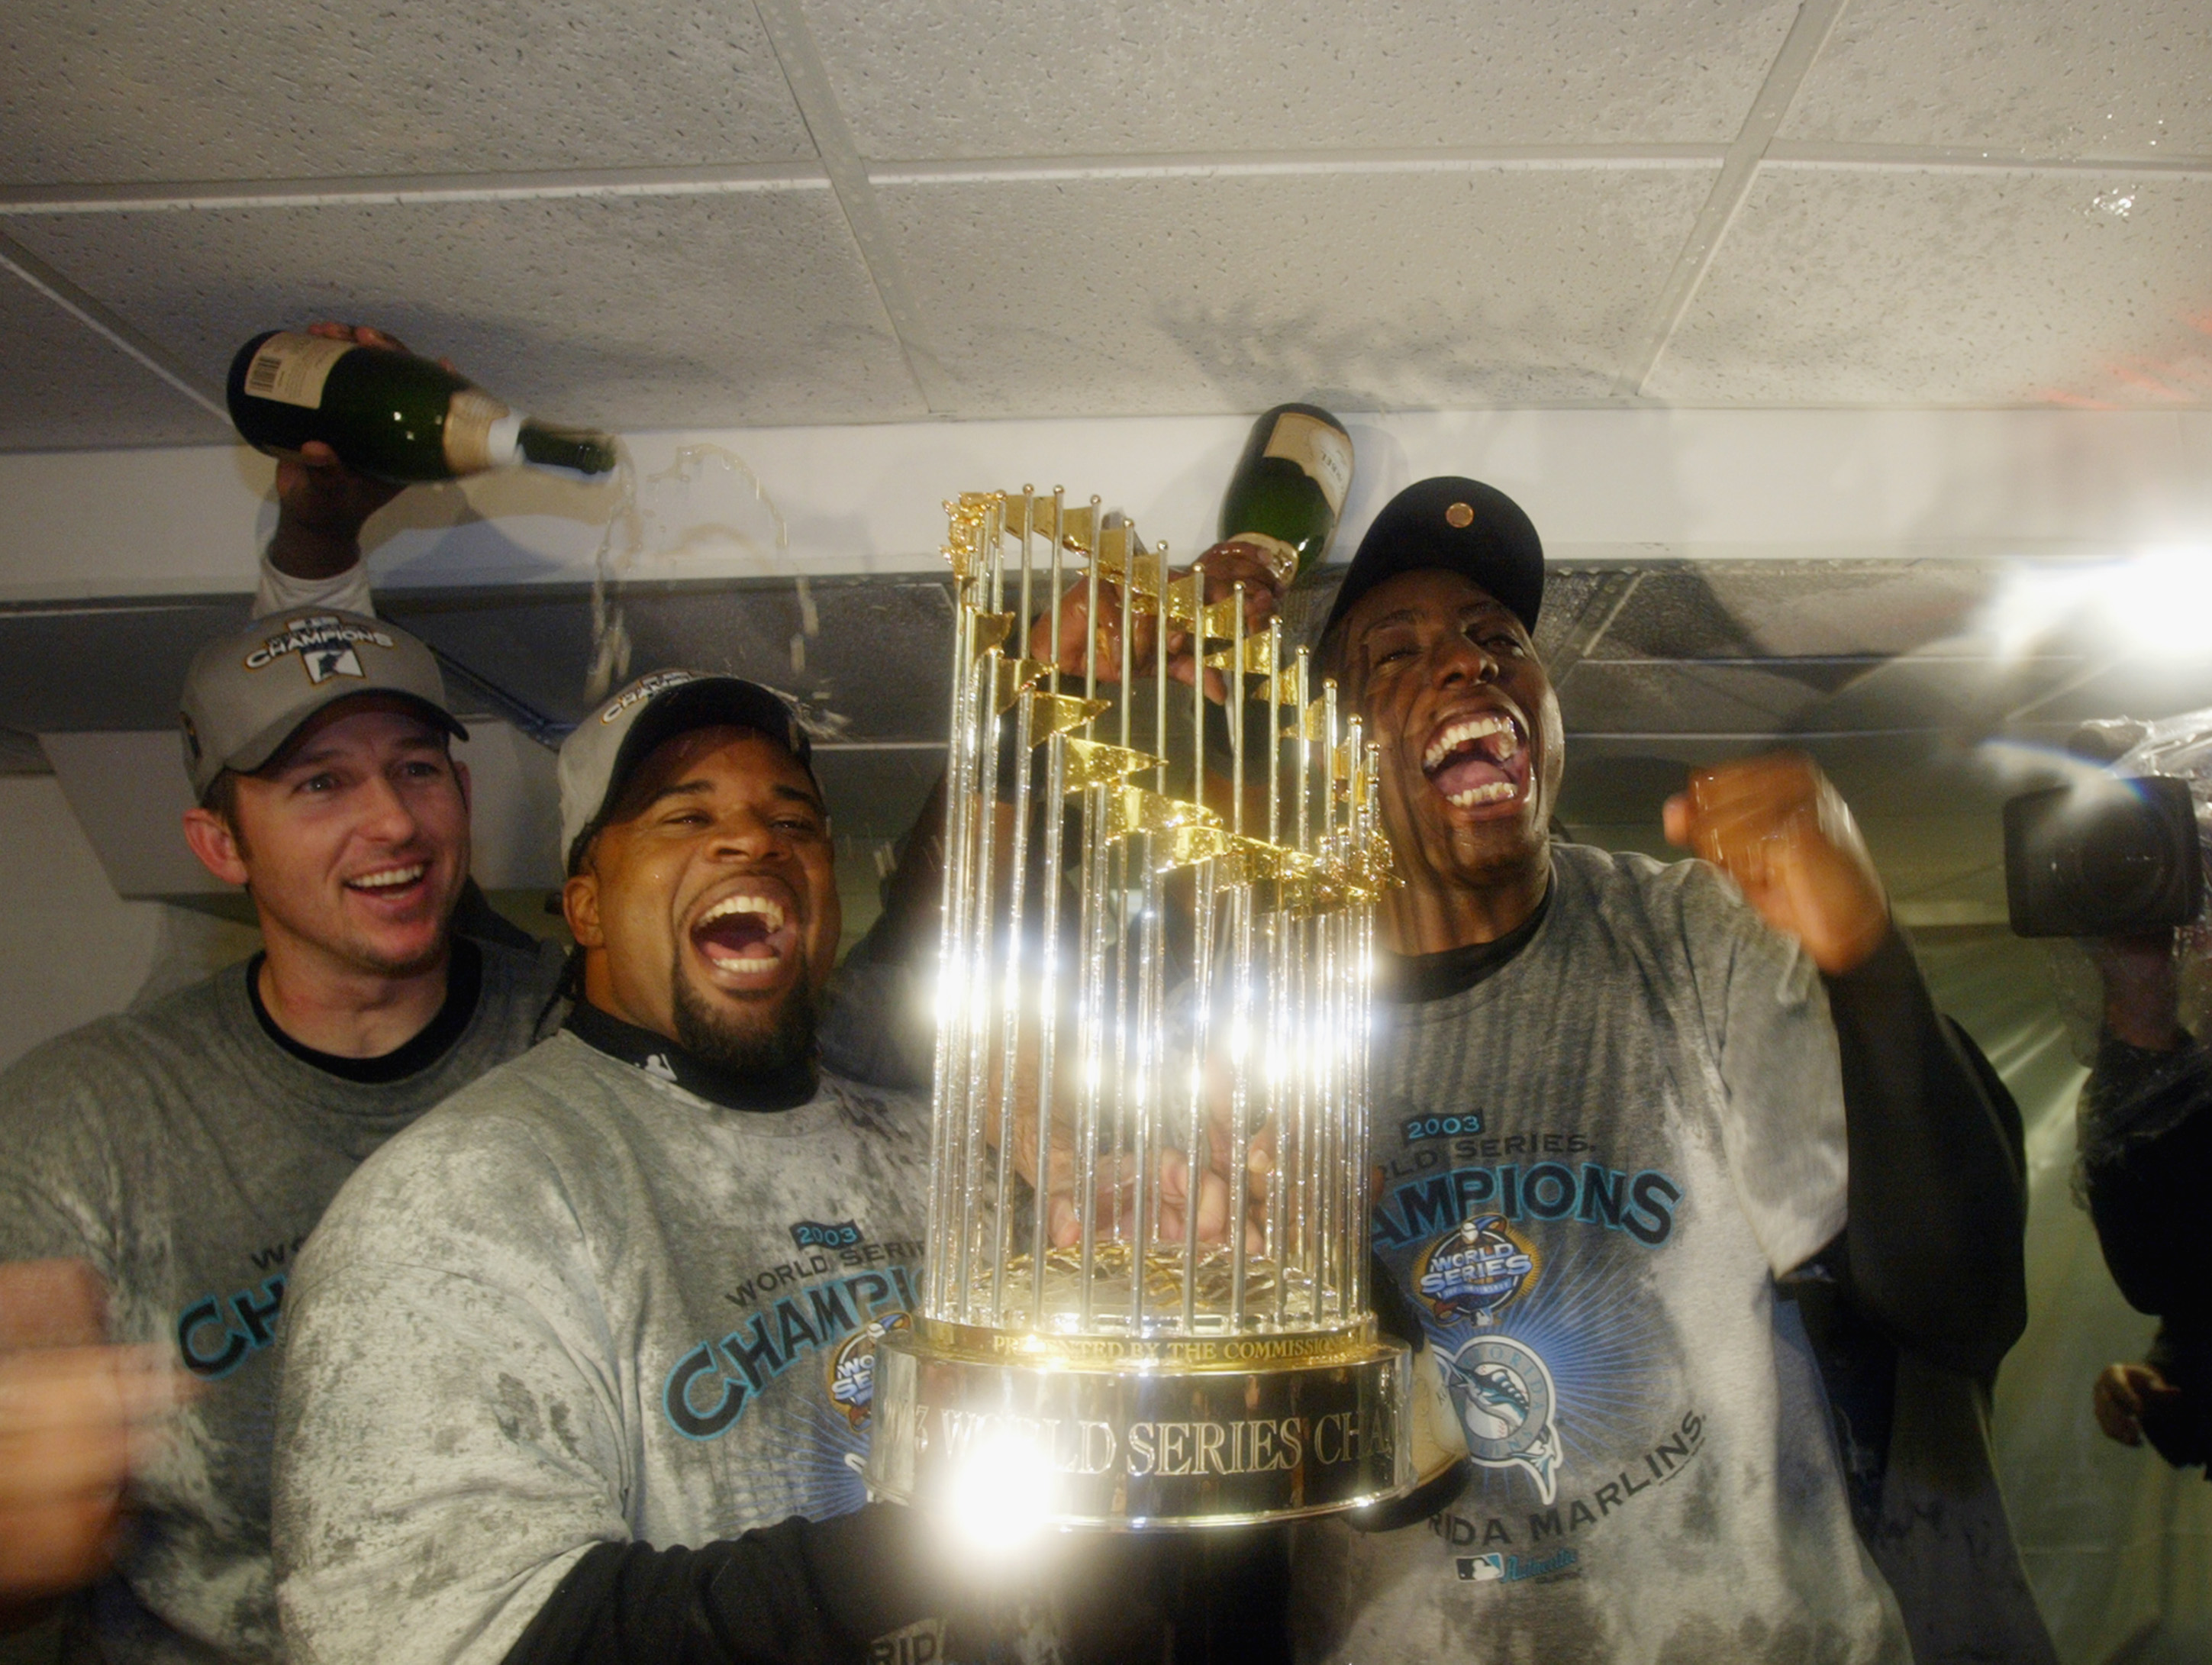 BRONX, NY - OCTOBER 25:  Florida Marlins players celebrate with the World Series Trophy after defeating the New York Yankees in game six of the Major League Baseball World Series on October 25, 2003 at Yankee Stadium in the Bronx, New York.  The Marlins w